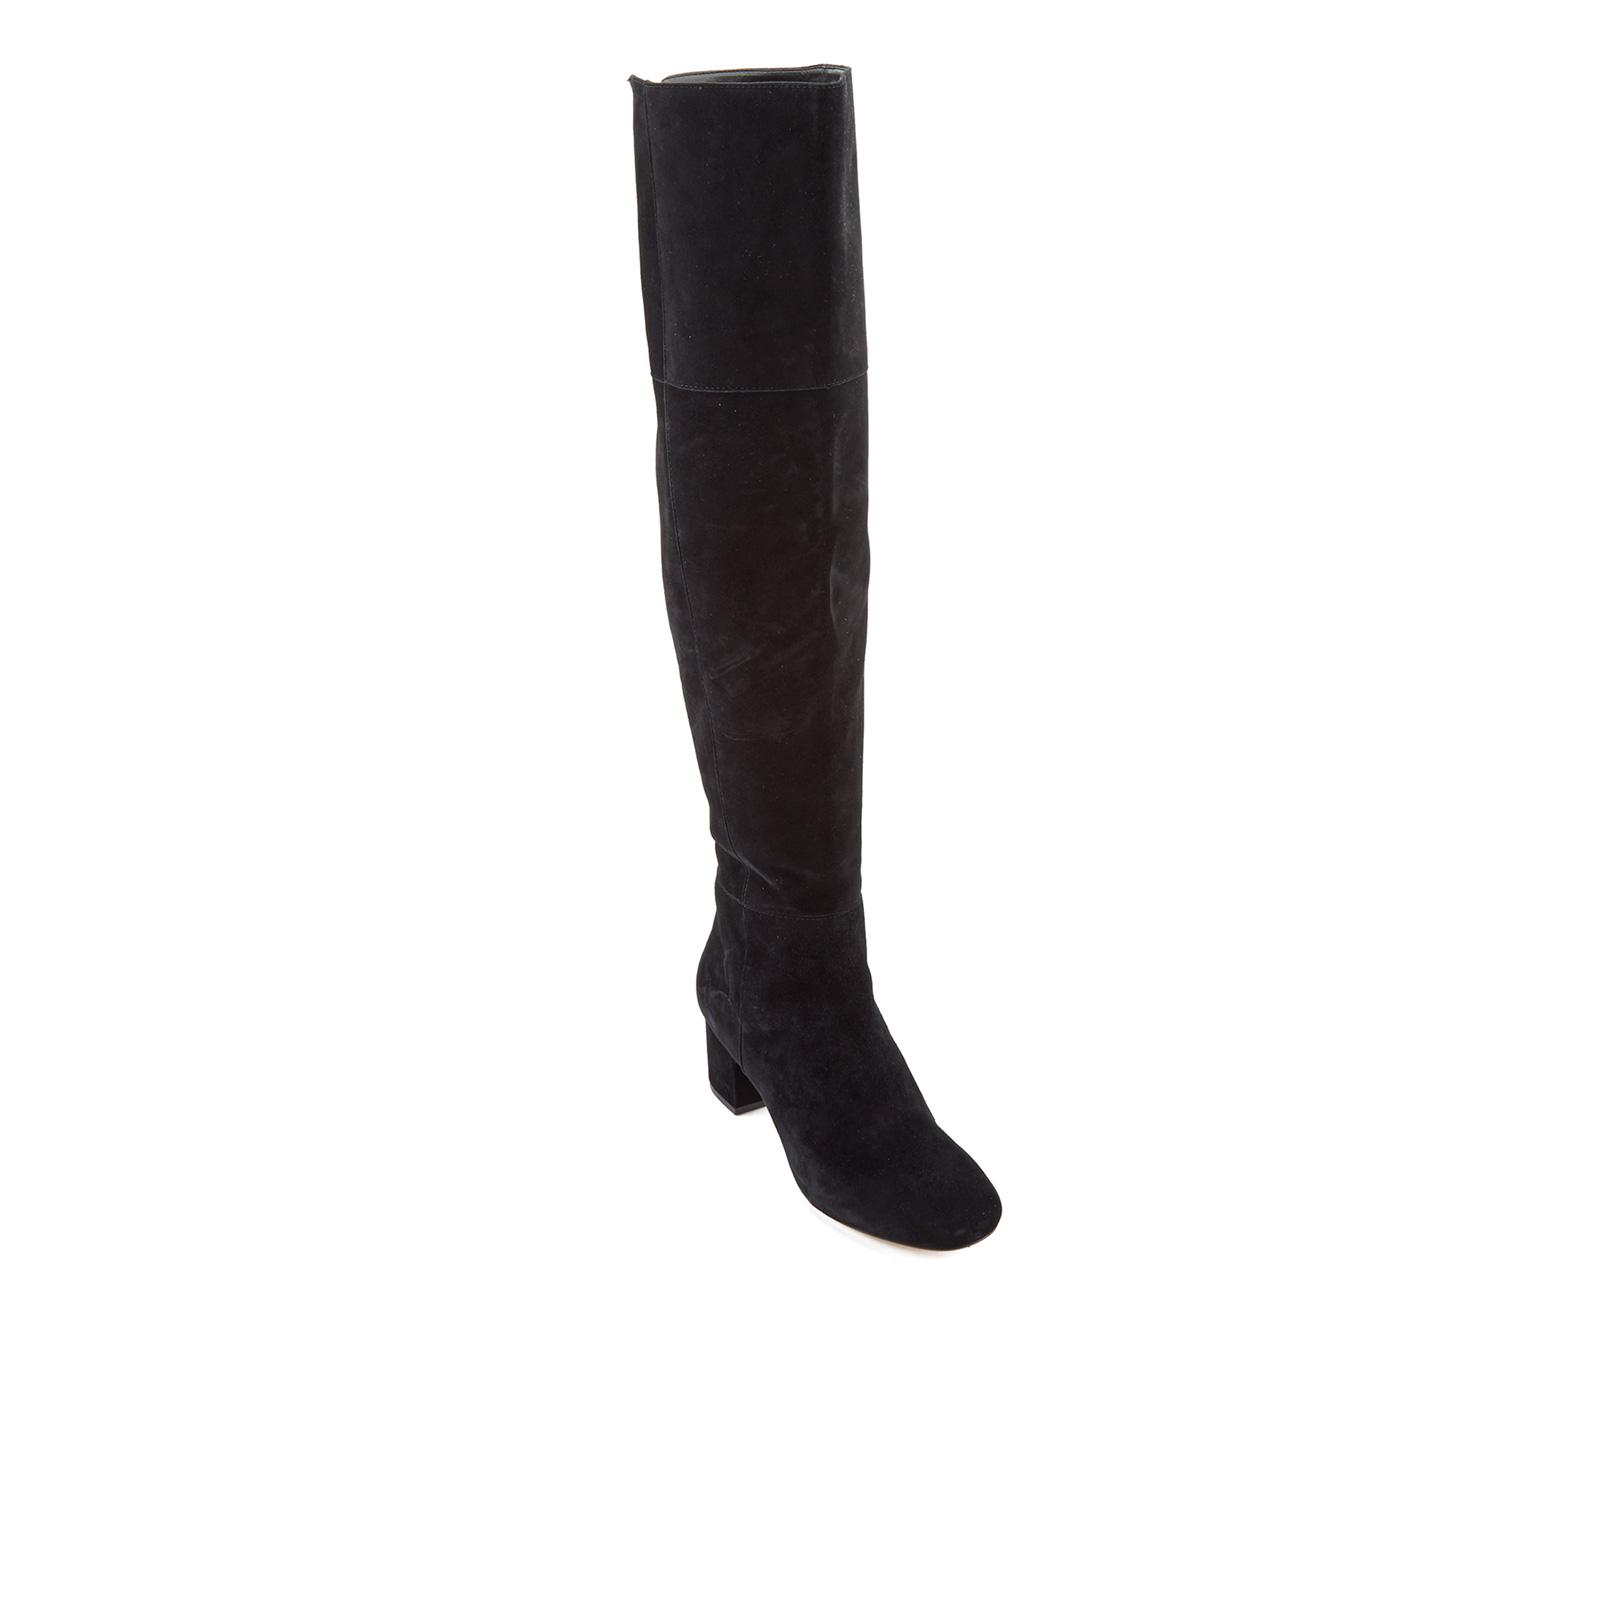 c76ee81a41b Lyst - Dune Sanford Suede Thigh High Heeled Boots in Black